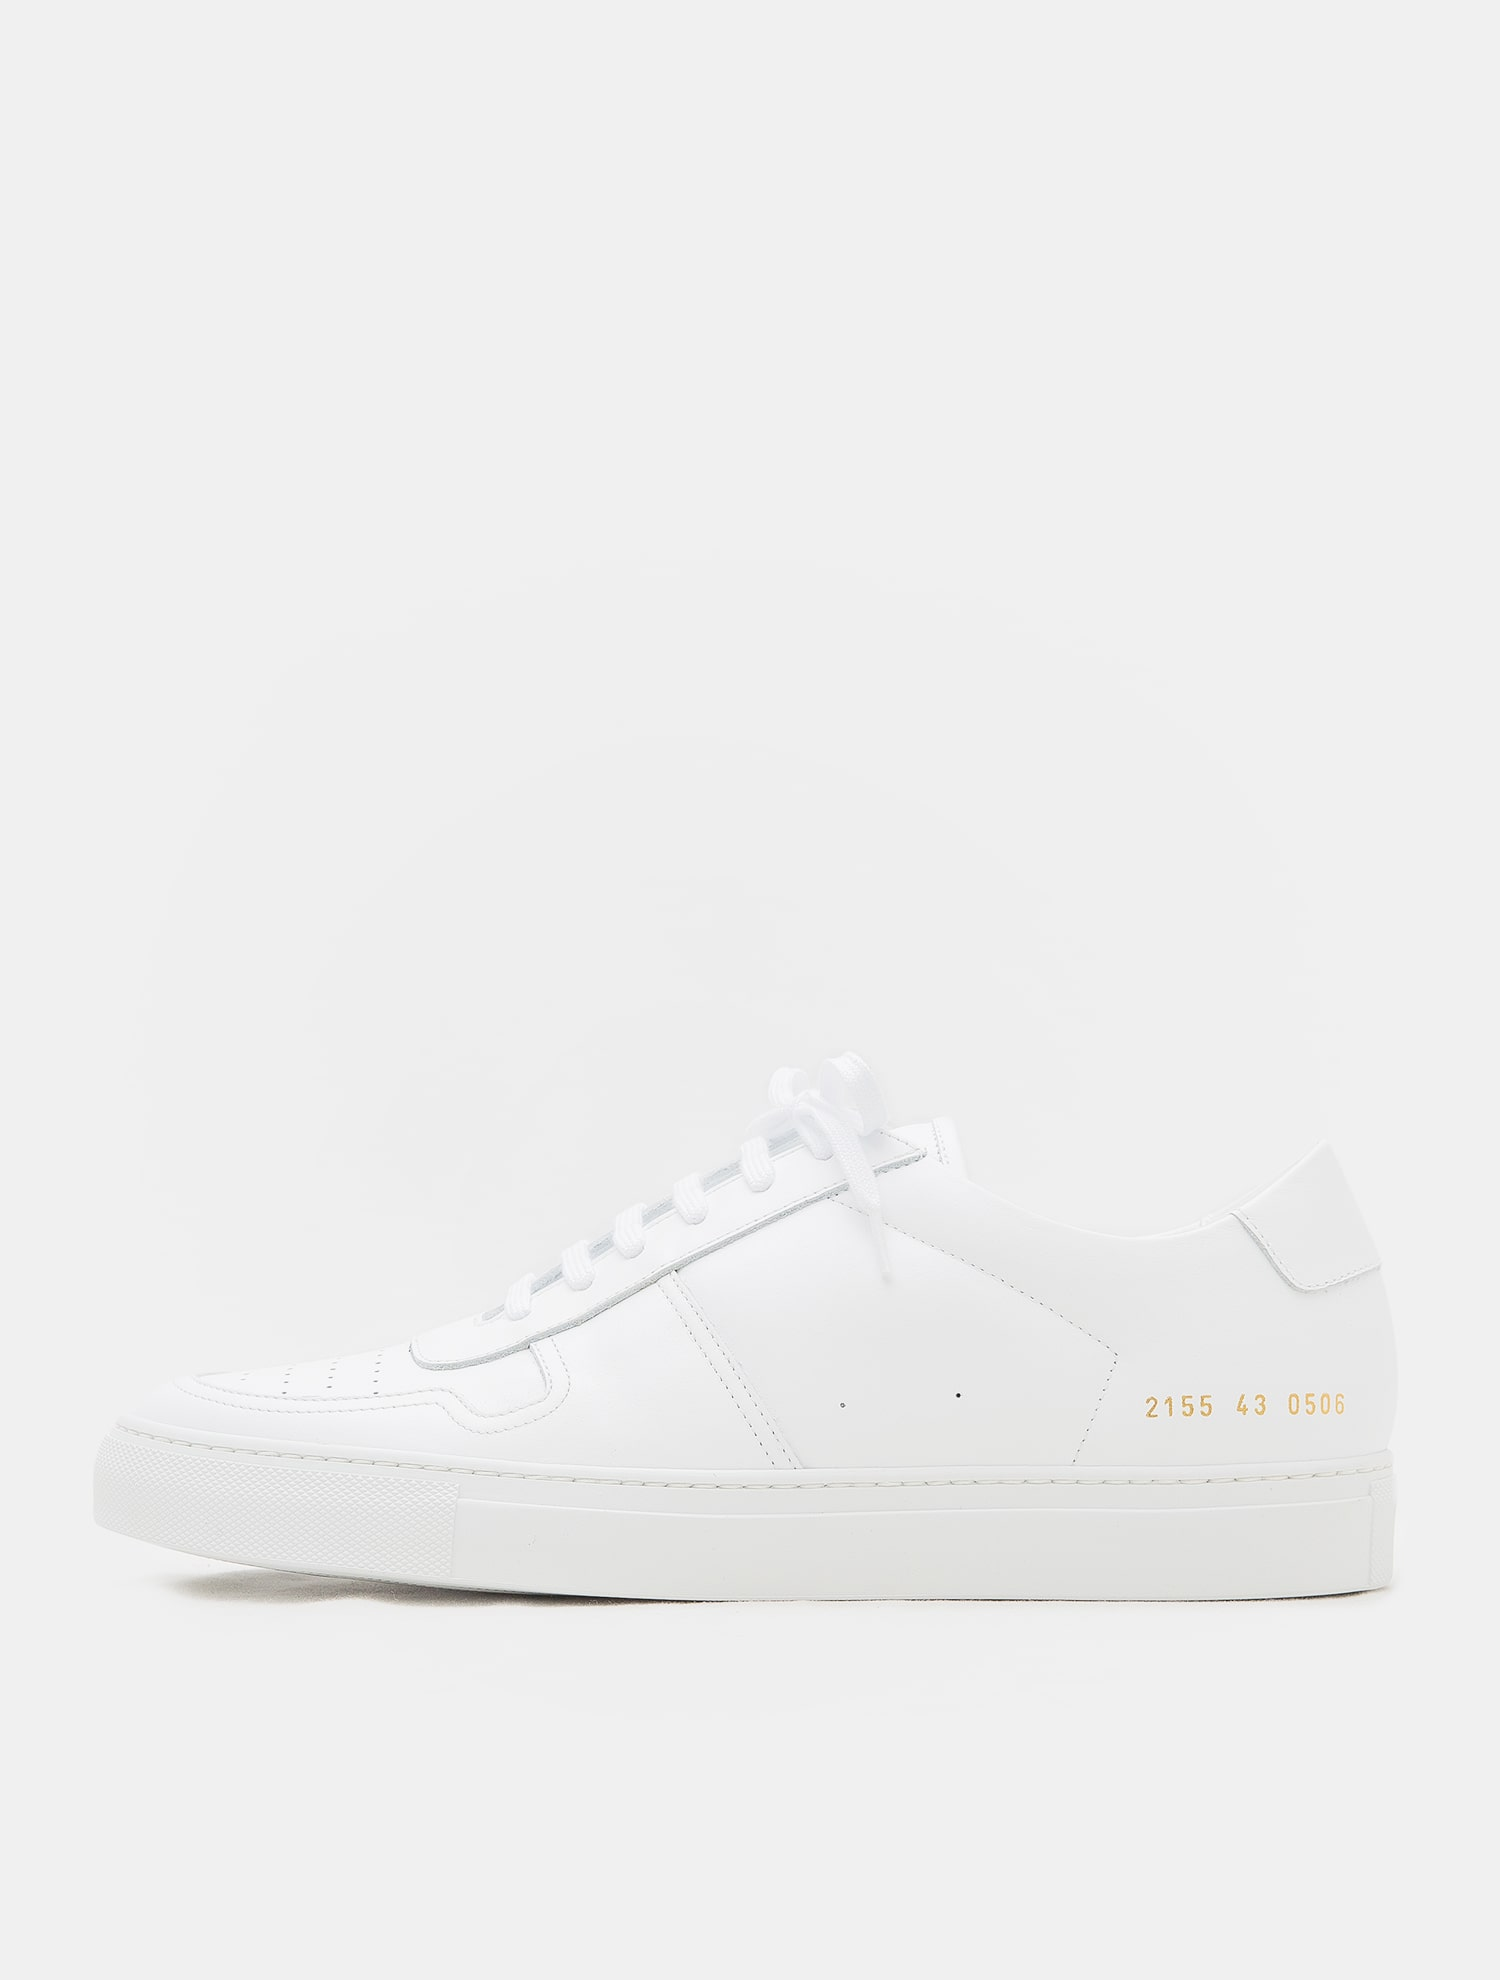 5ad3abce9d78 Common Projects   QM89K3CP21.  40%OFF  18FW B-ball Low In Leather – White ( Men)